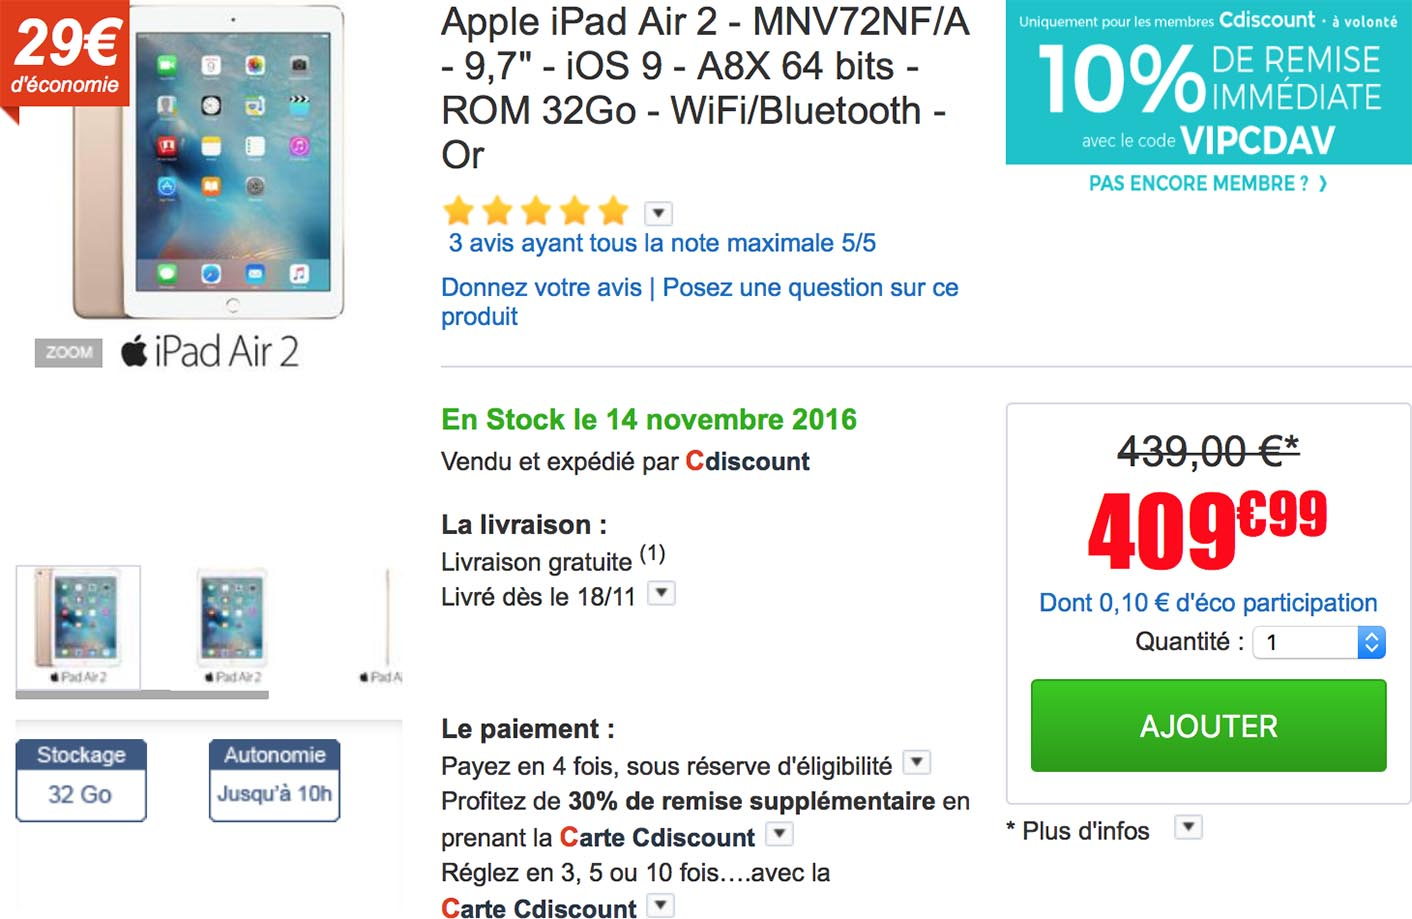 iPad Air 2 promo CDiscount